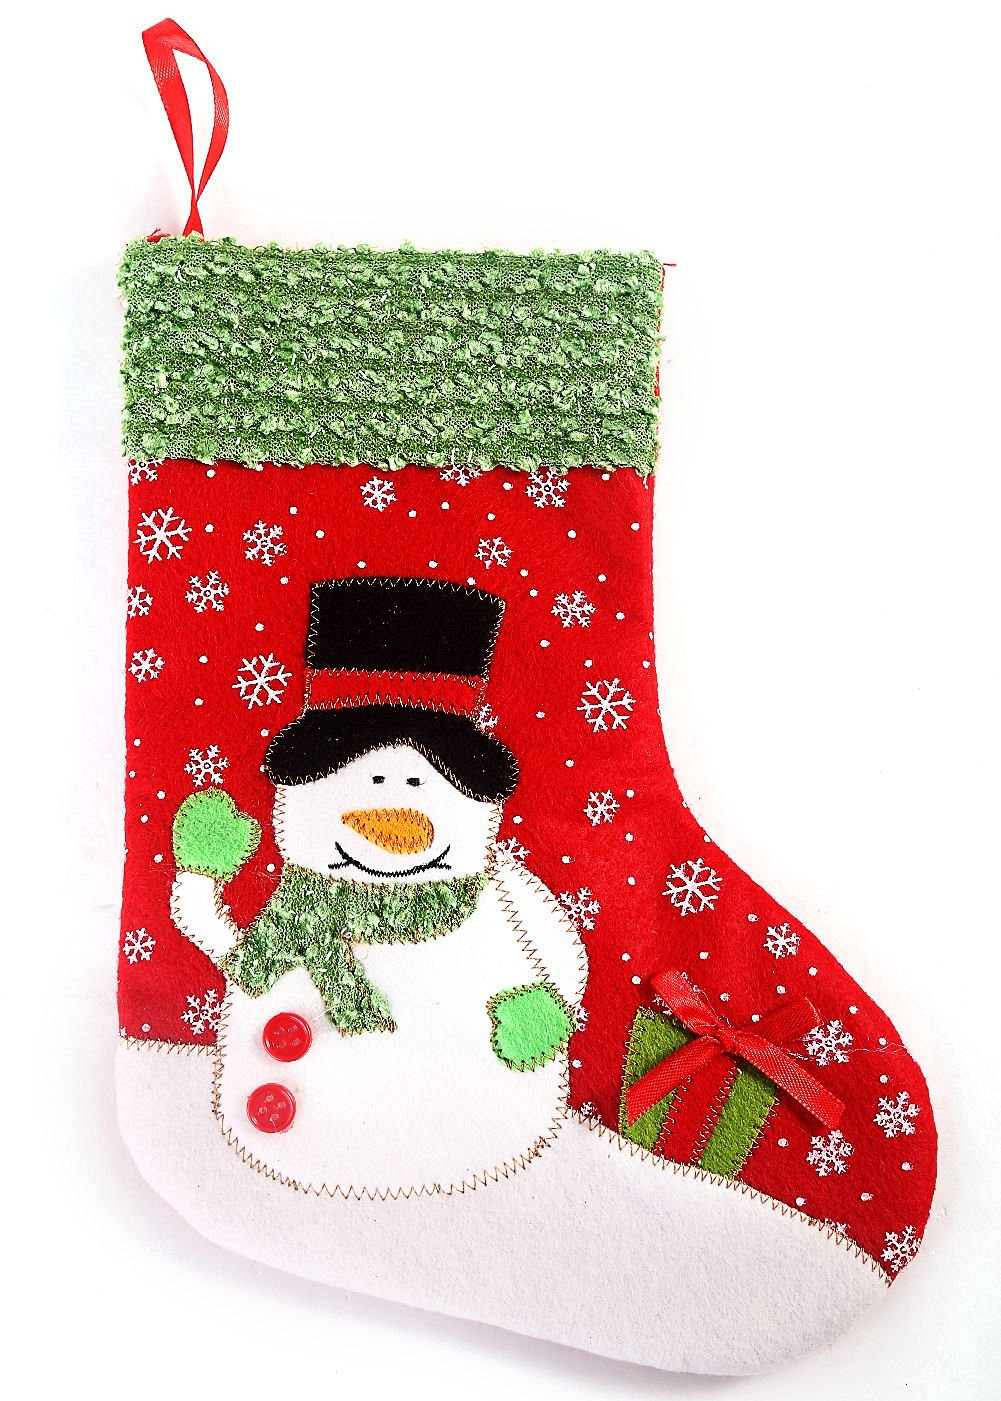 christmas trees indoor stockings decorating christmas snowmanchristmas decorations outdoor santa claus christmas bag gift